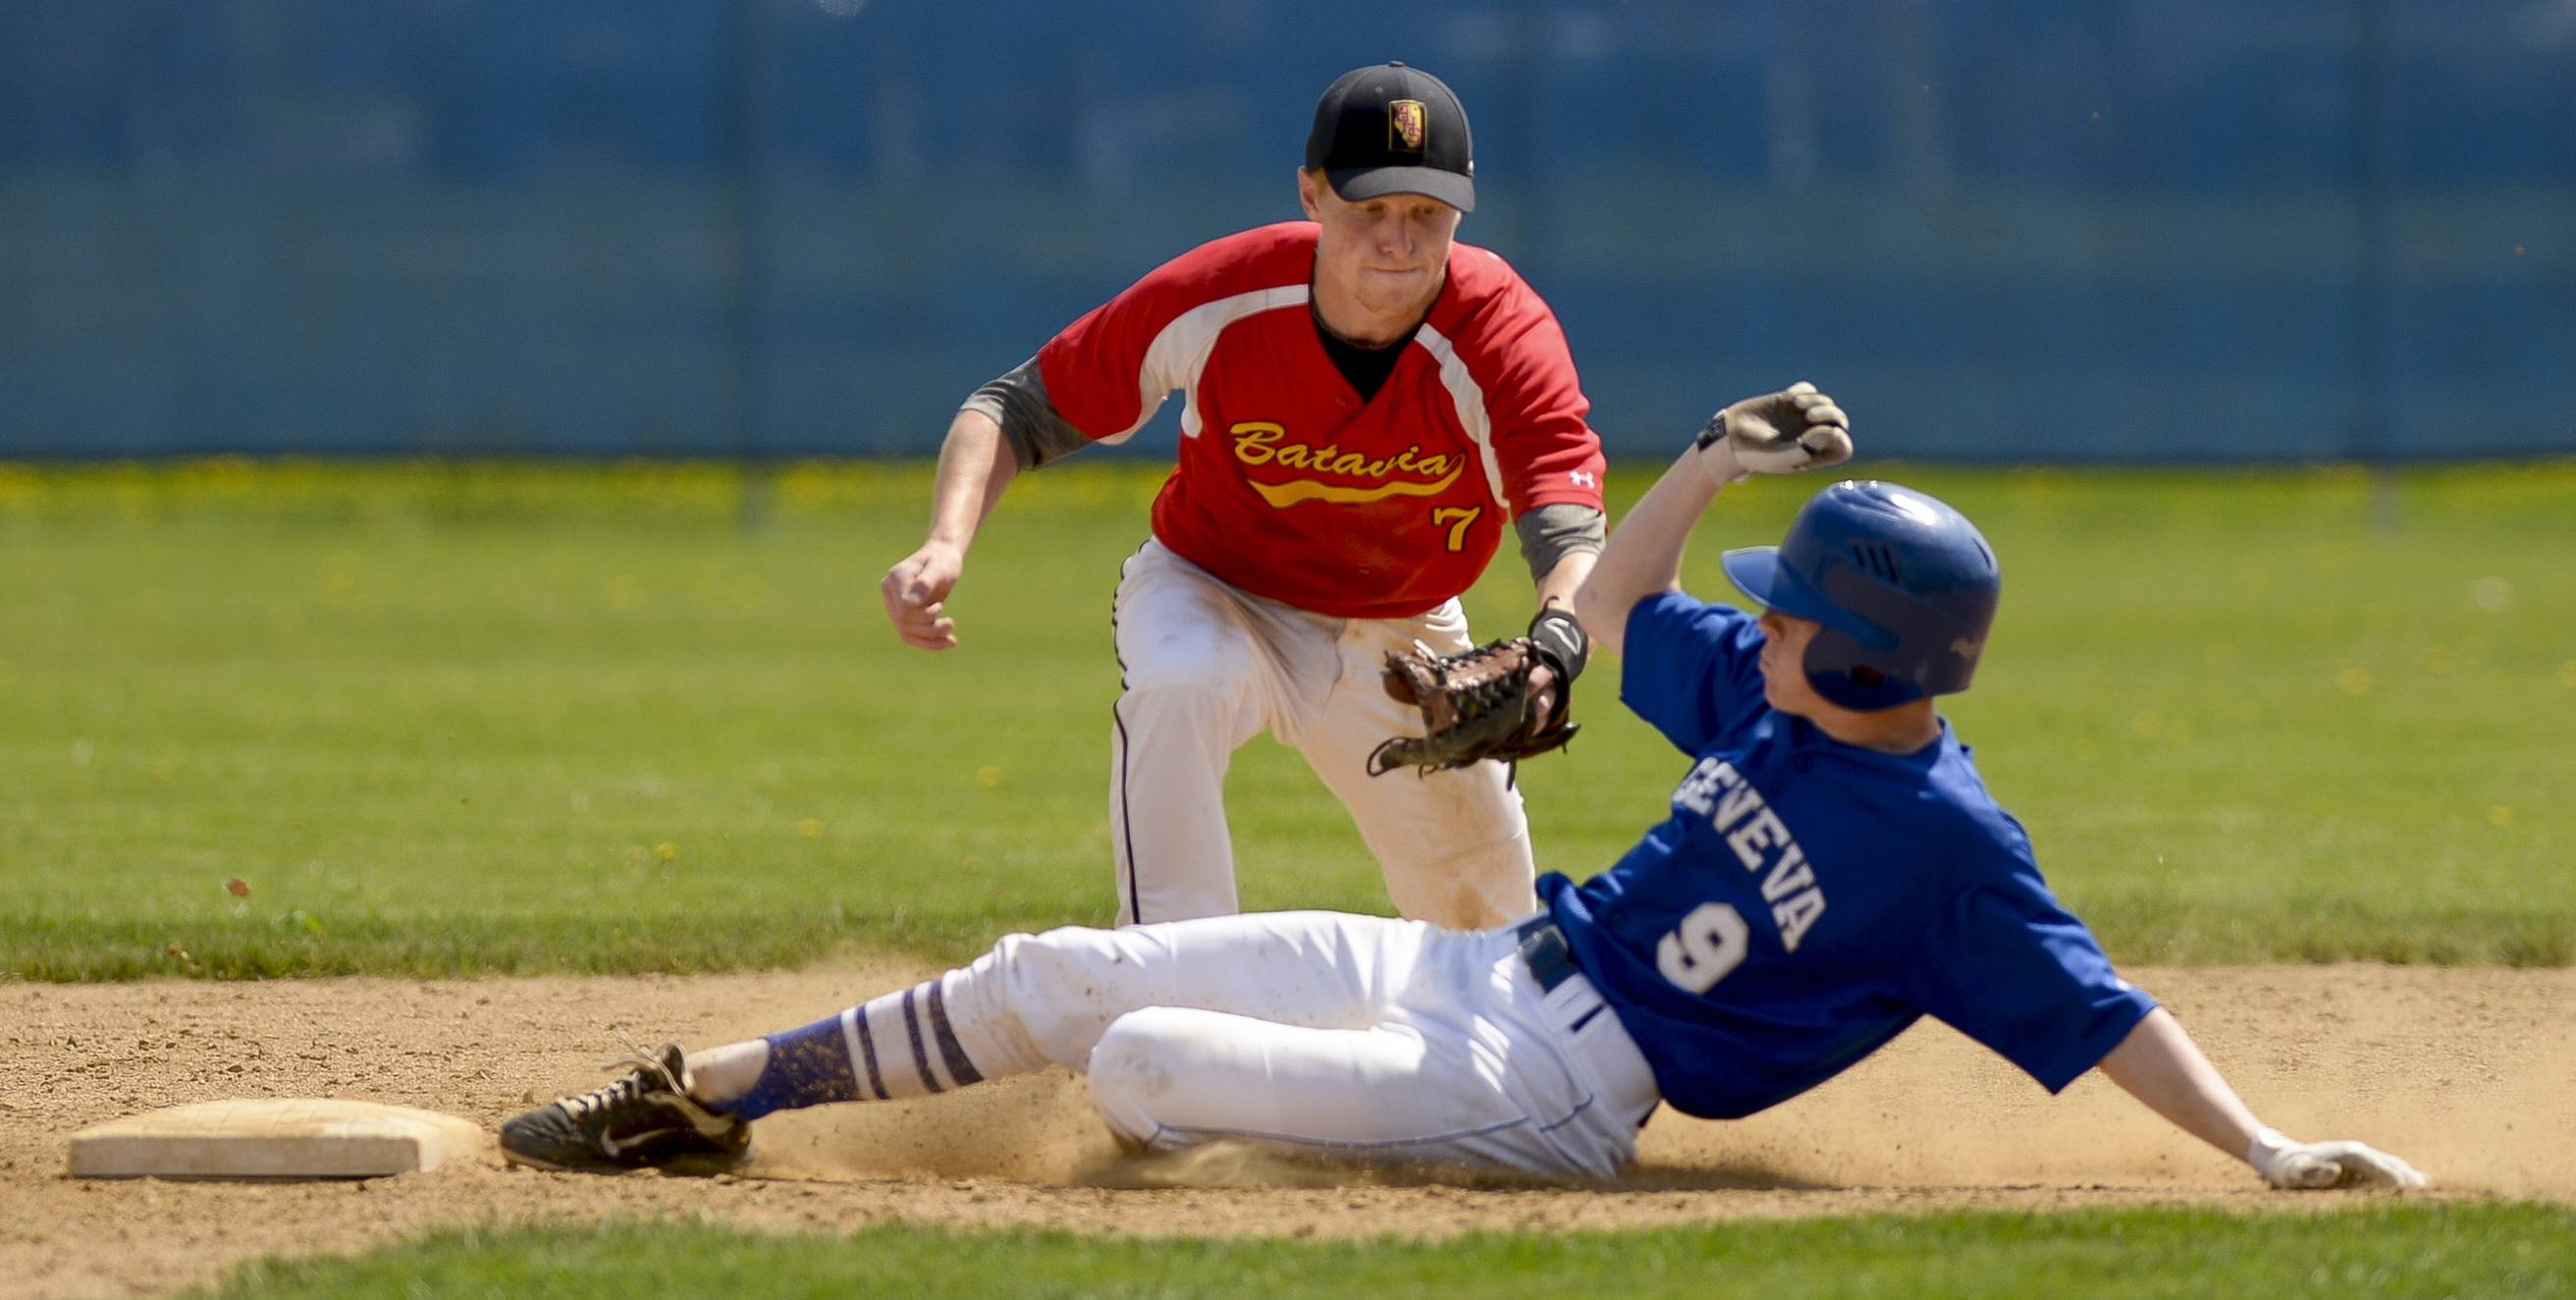 Geneva's Nick Fitzmaurice beats the tag from Andrew Siegler.